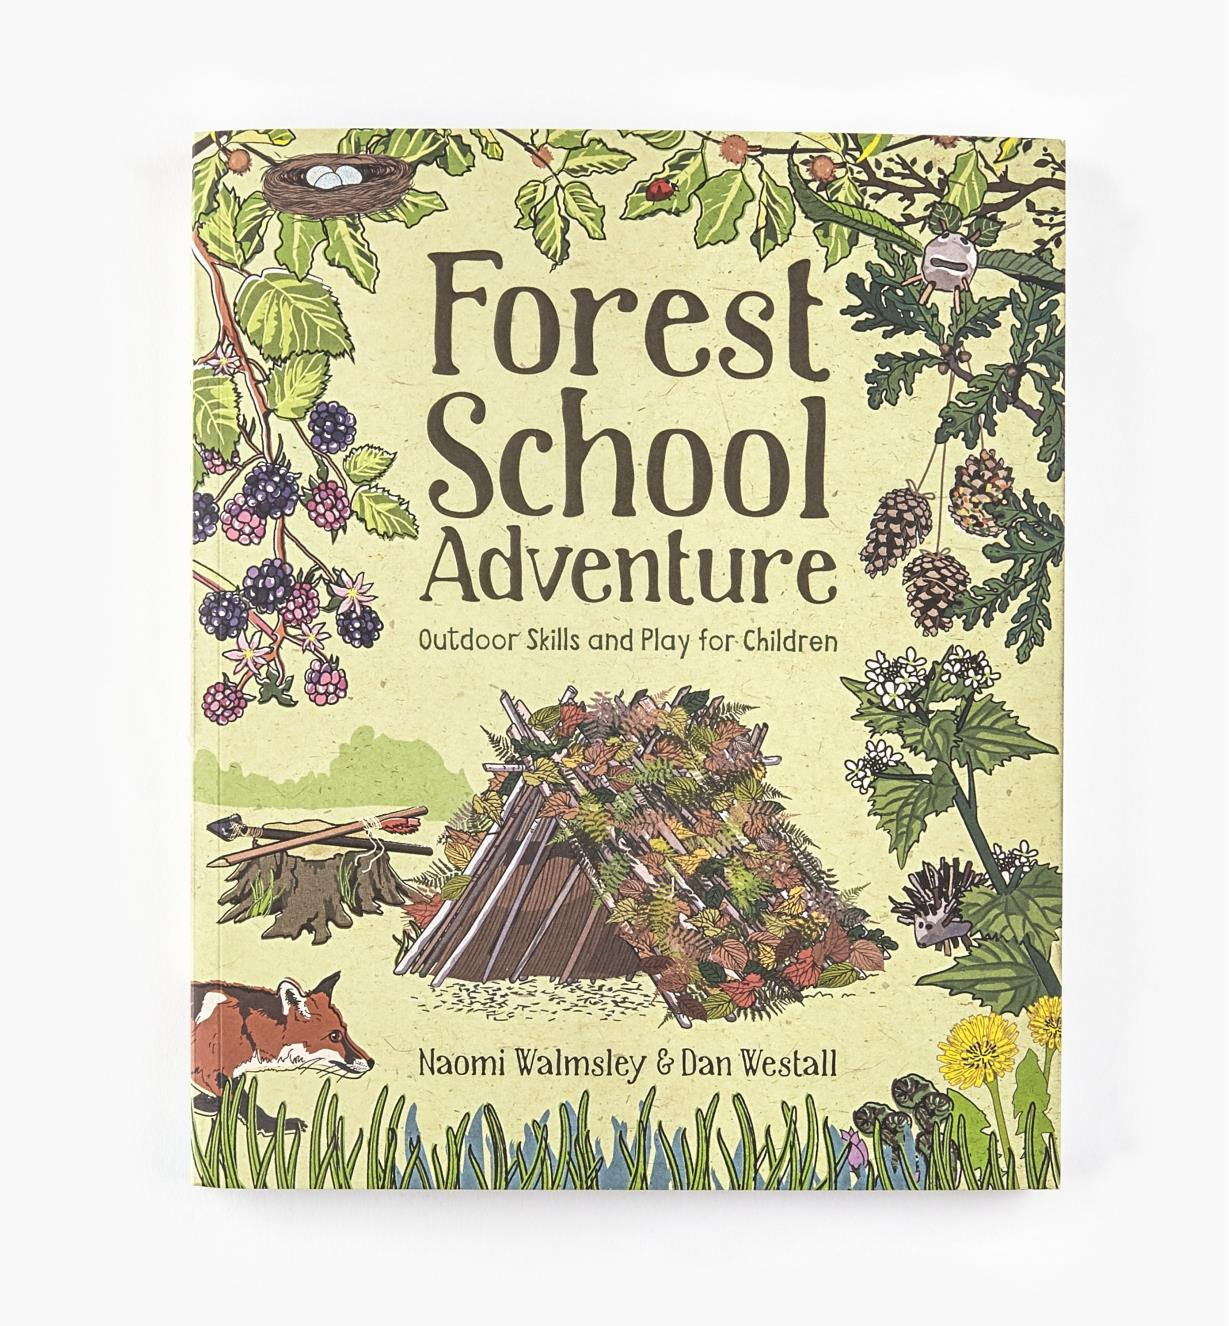 73L0133 - Forest School Adventure